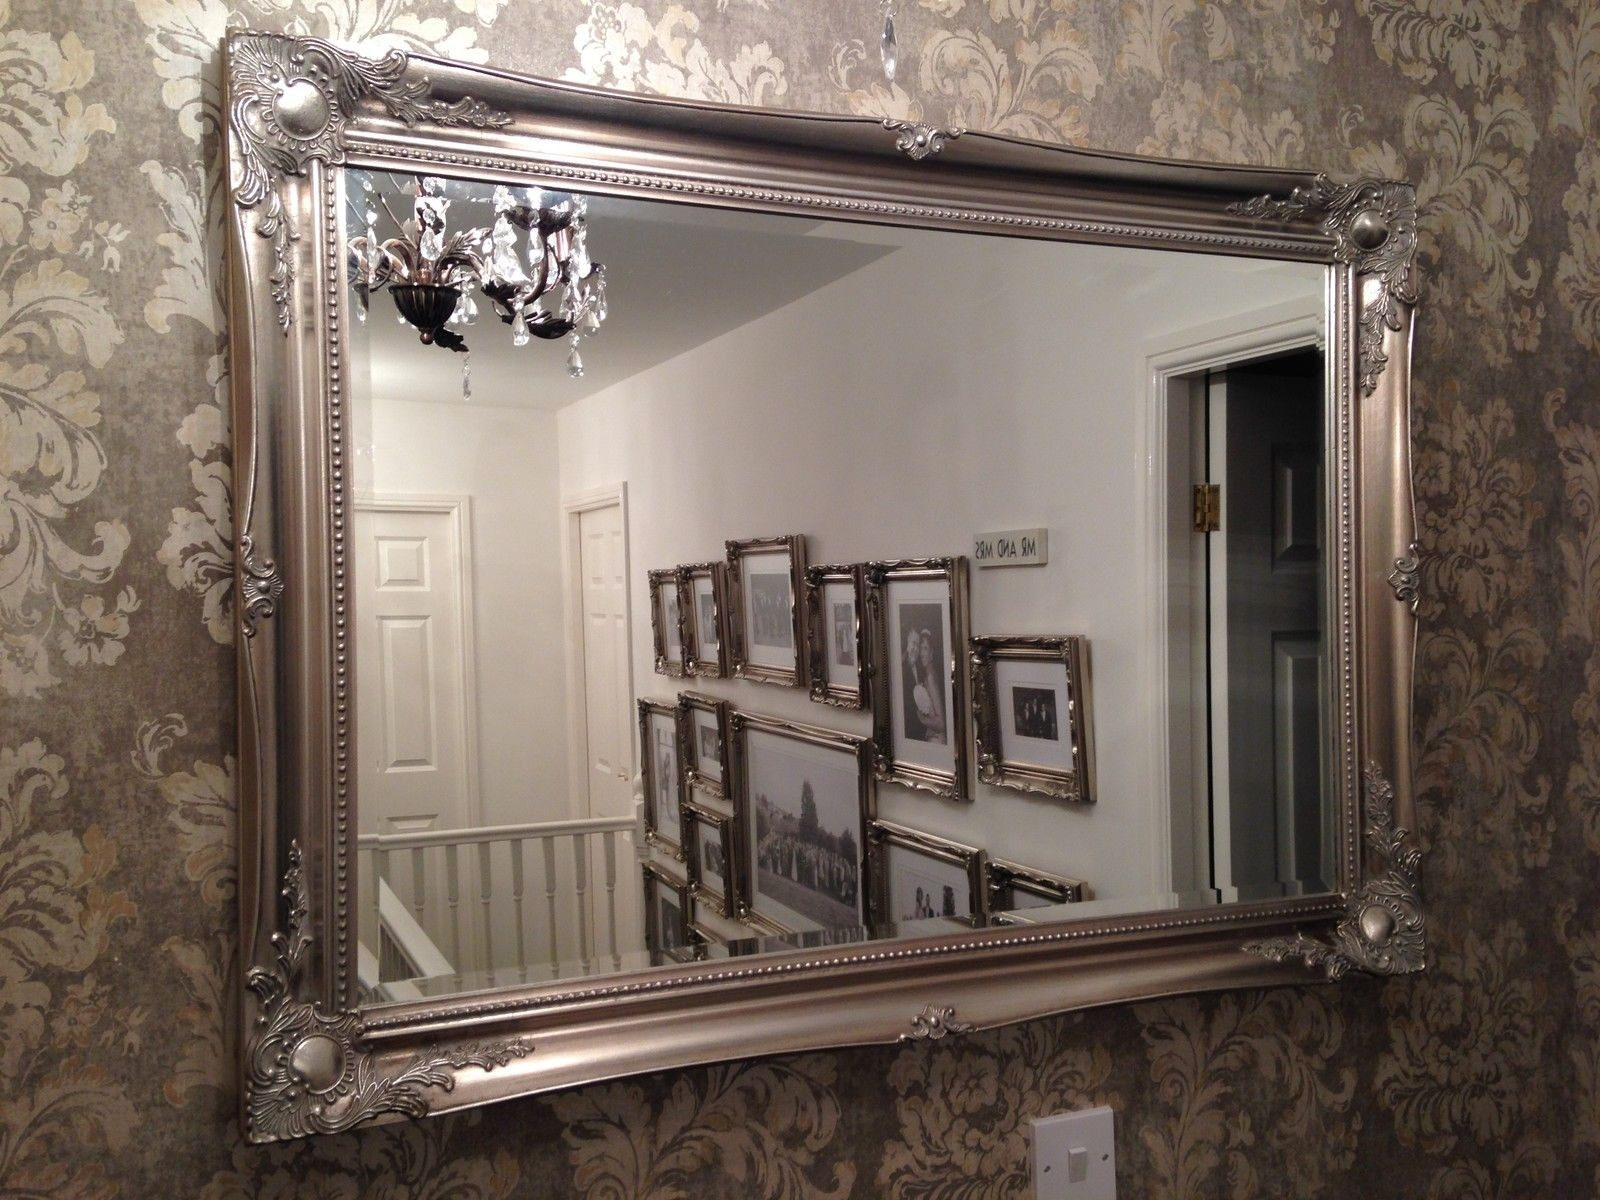 X Large Antique Silver Shab Chic Ornate Decorative Wall Mirror In Silver Ornate Mirror (Image 15 of 15)